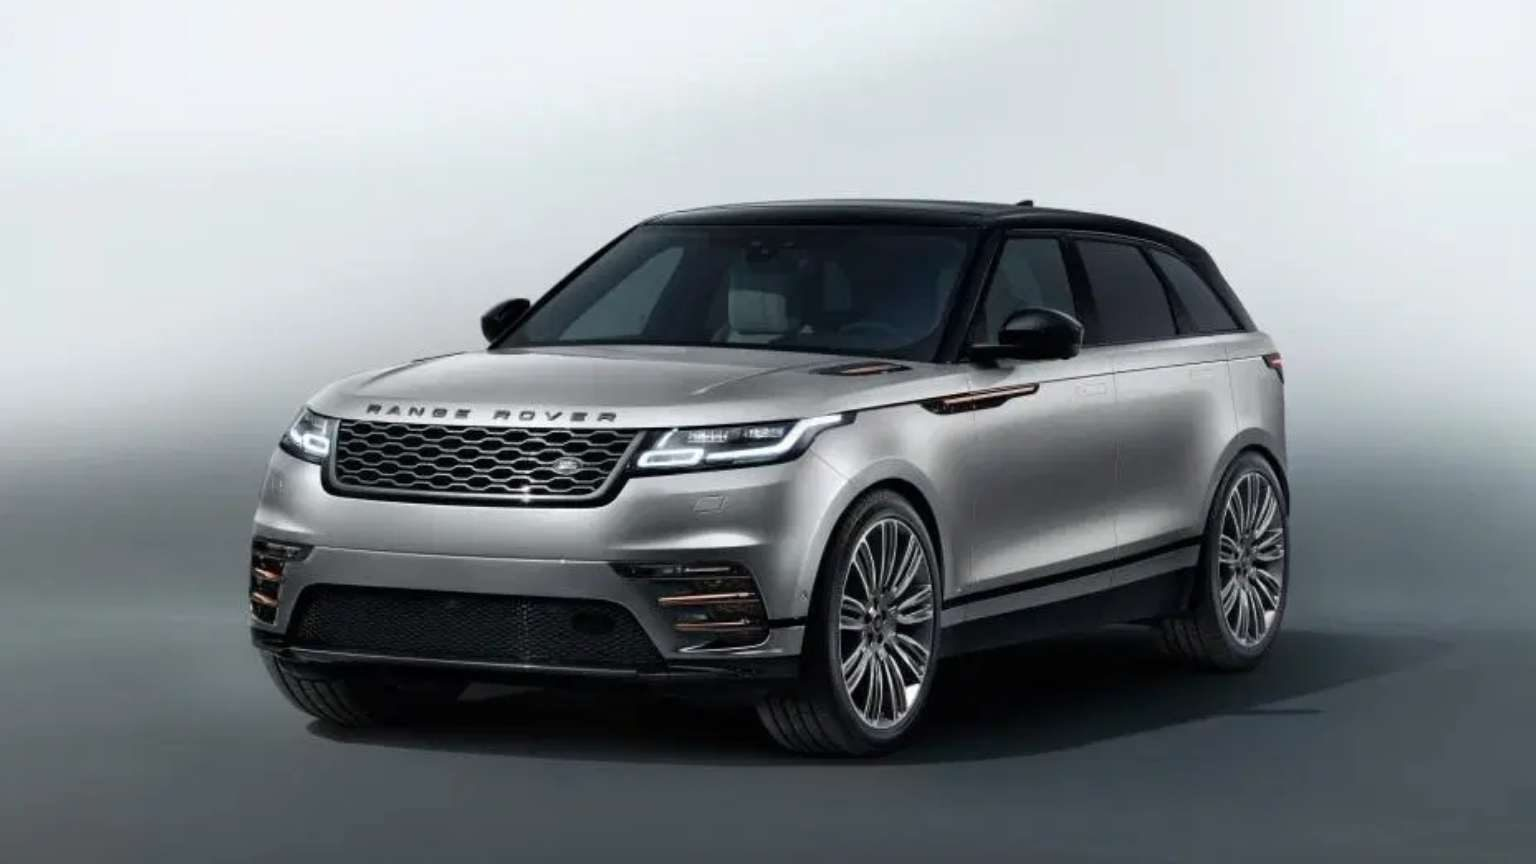 2021 Land Rover Road Rover SUV